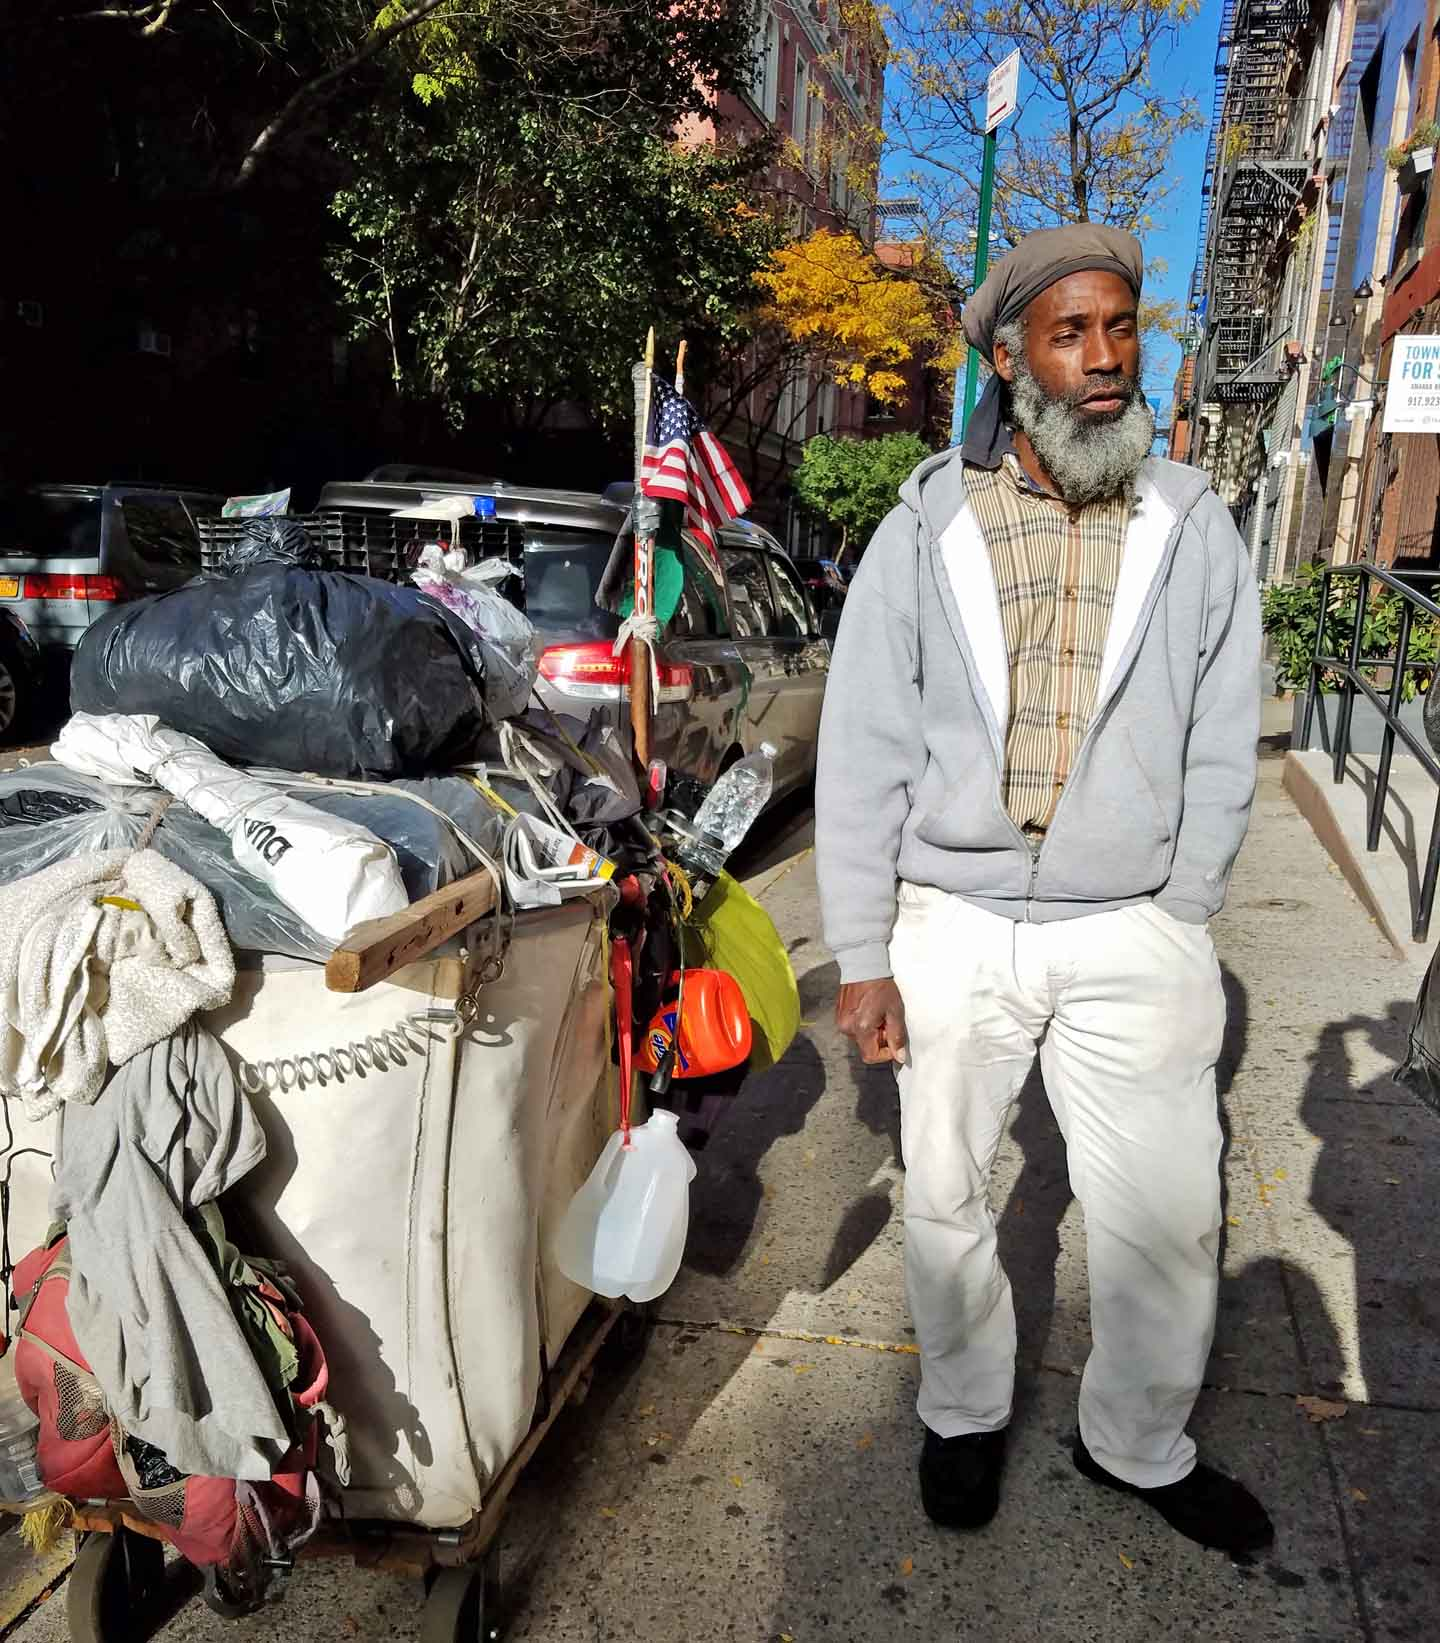 Tony McCrow speaks with elegance about Thanksgiving and the Islamic faith.